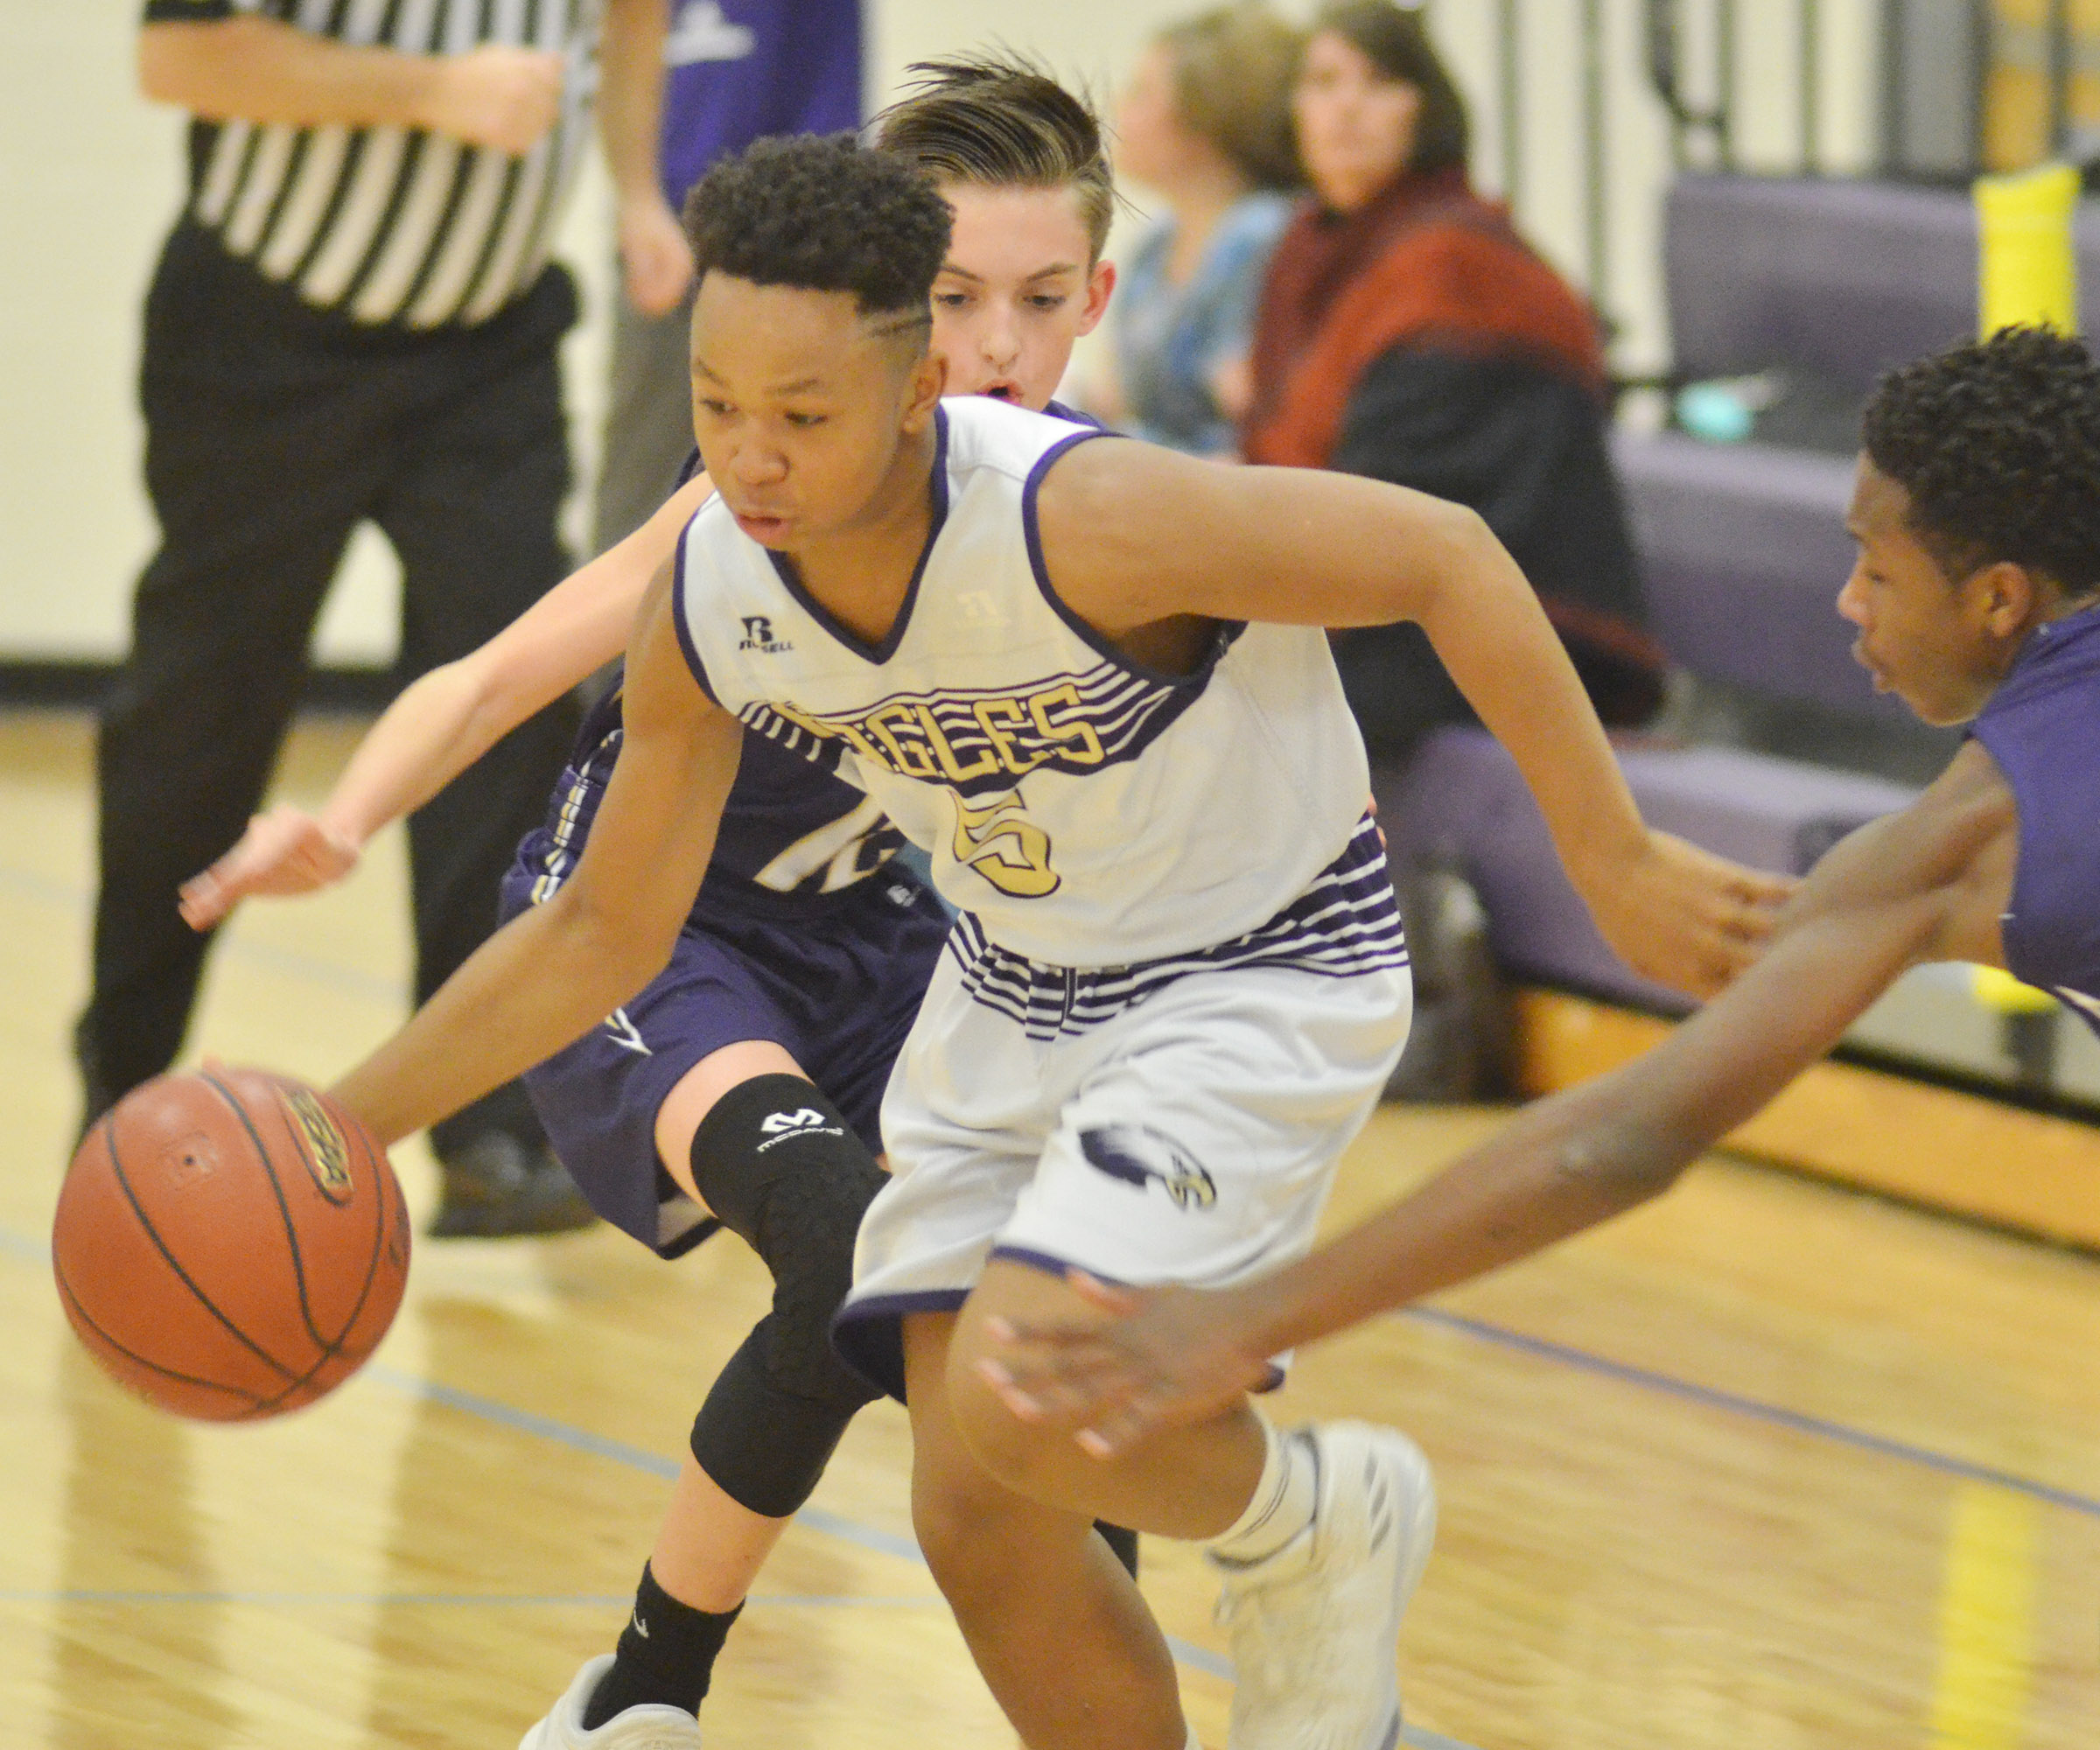 CMS seventh-grader Deondre Weathers dribbles to the hoop.